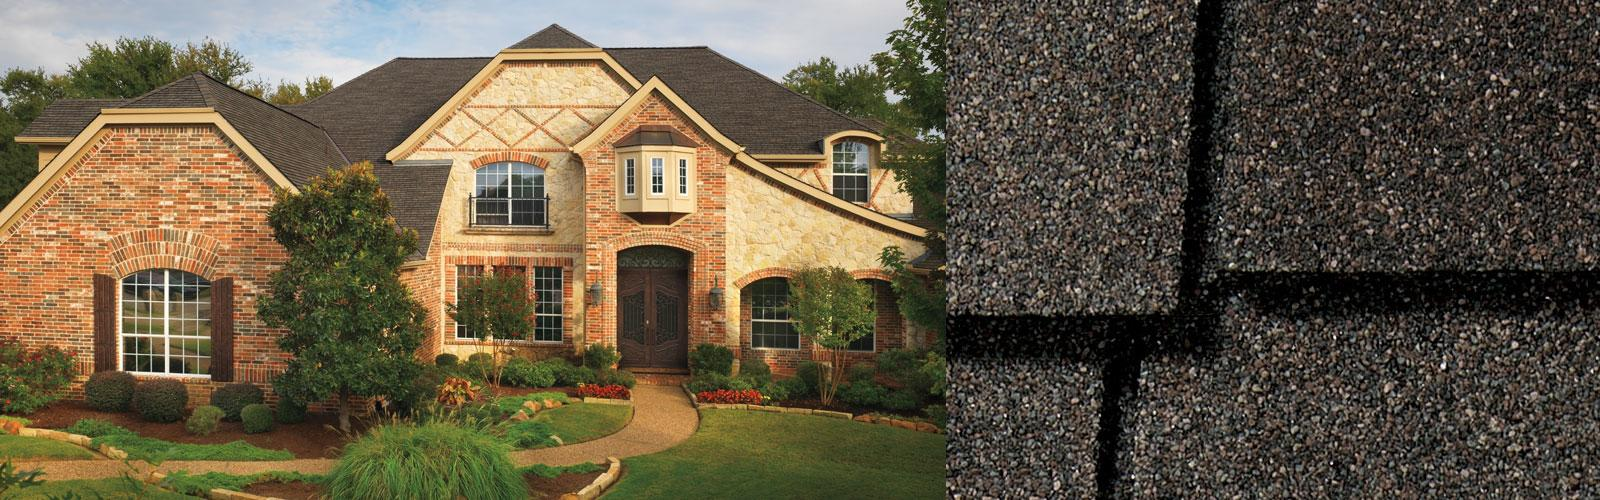 Elite Roofing Company of Nashville Images